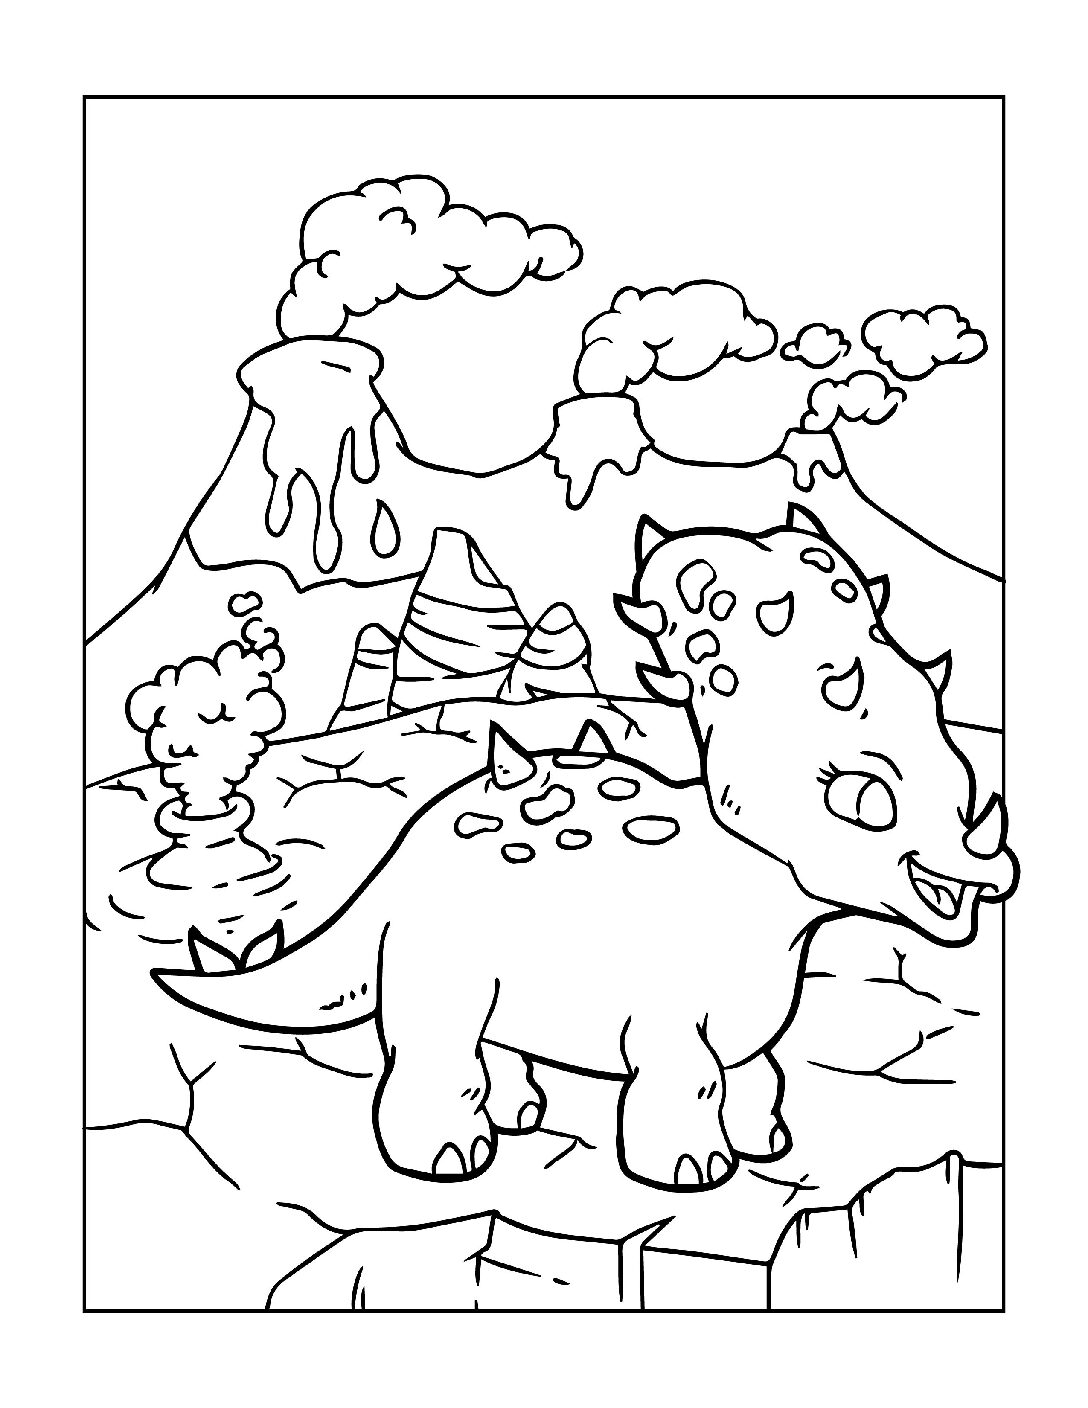 Coloring-Pages-Dinosaur-9-pdf Free Printable Dinasour Colouring Pages